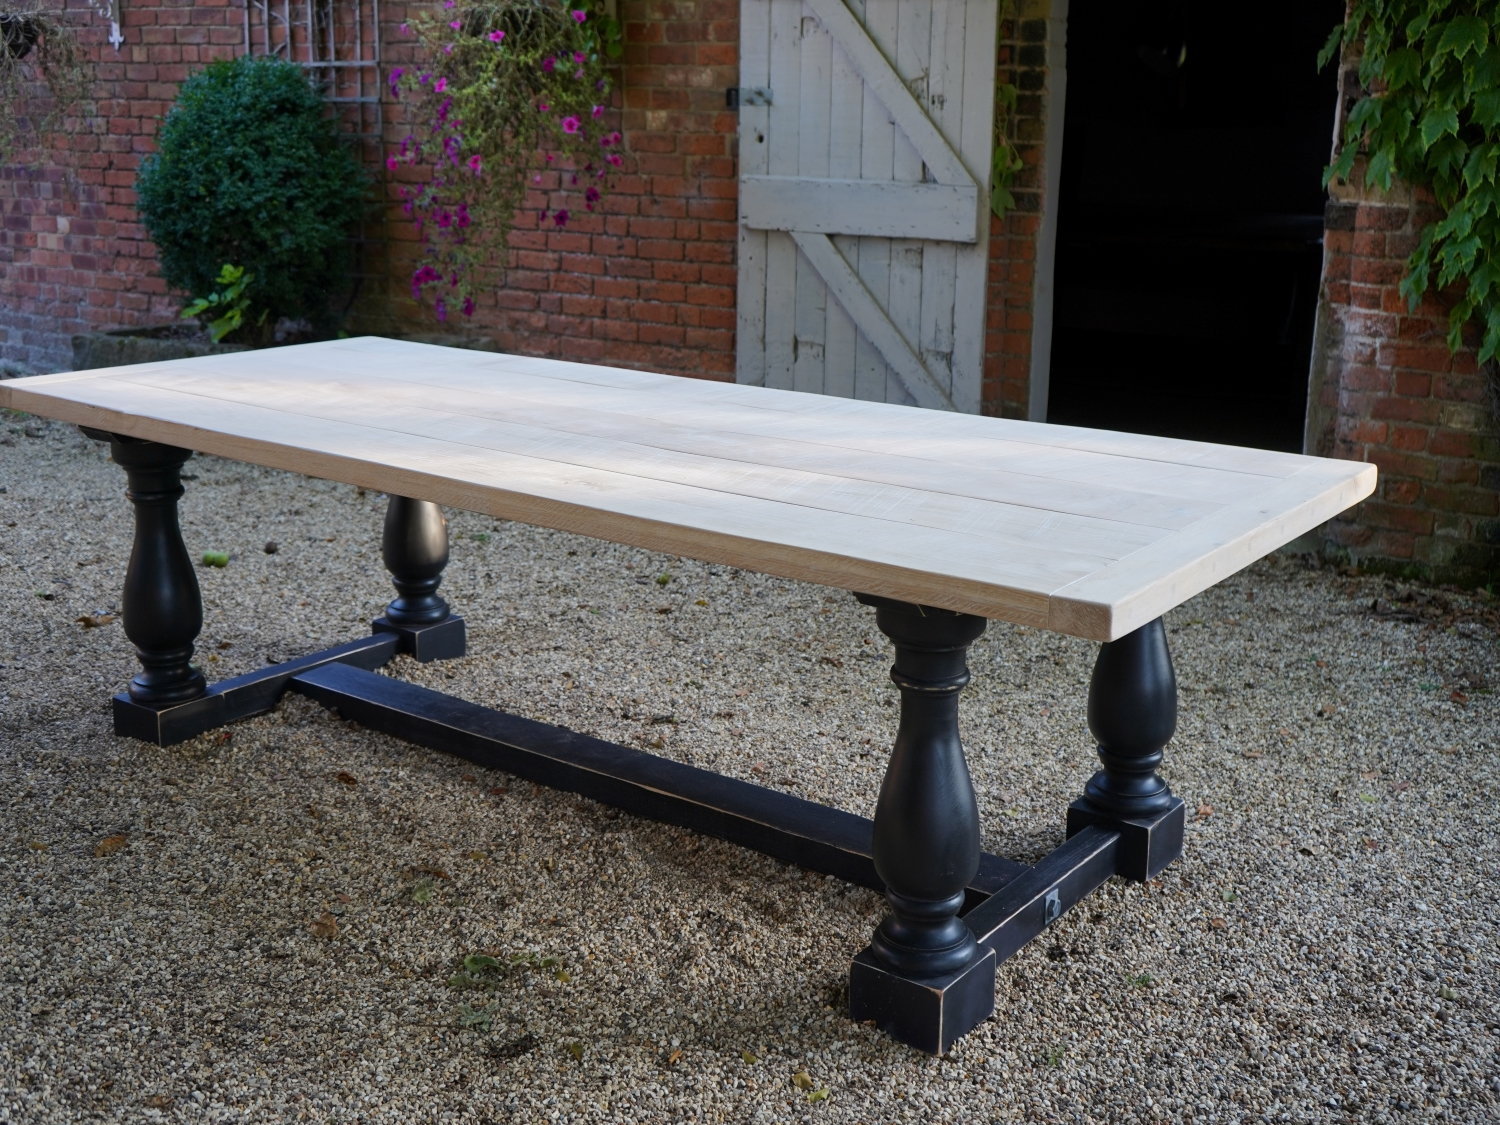 Solid Oak Top With Balustrade Leg